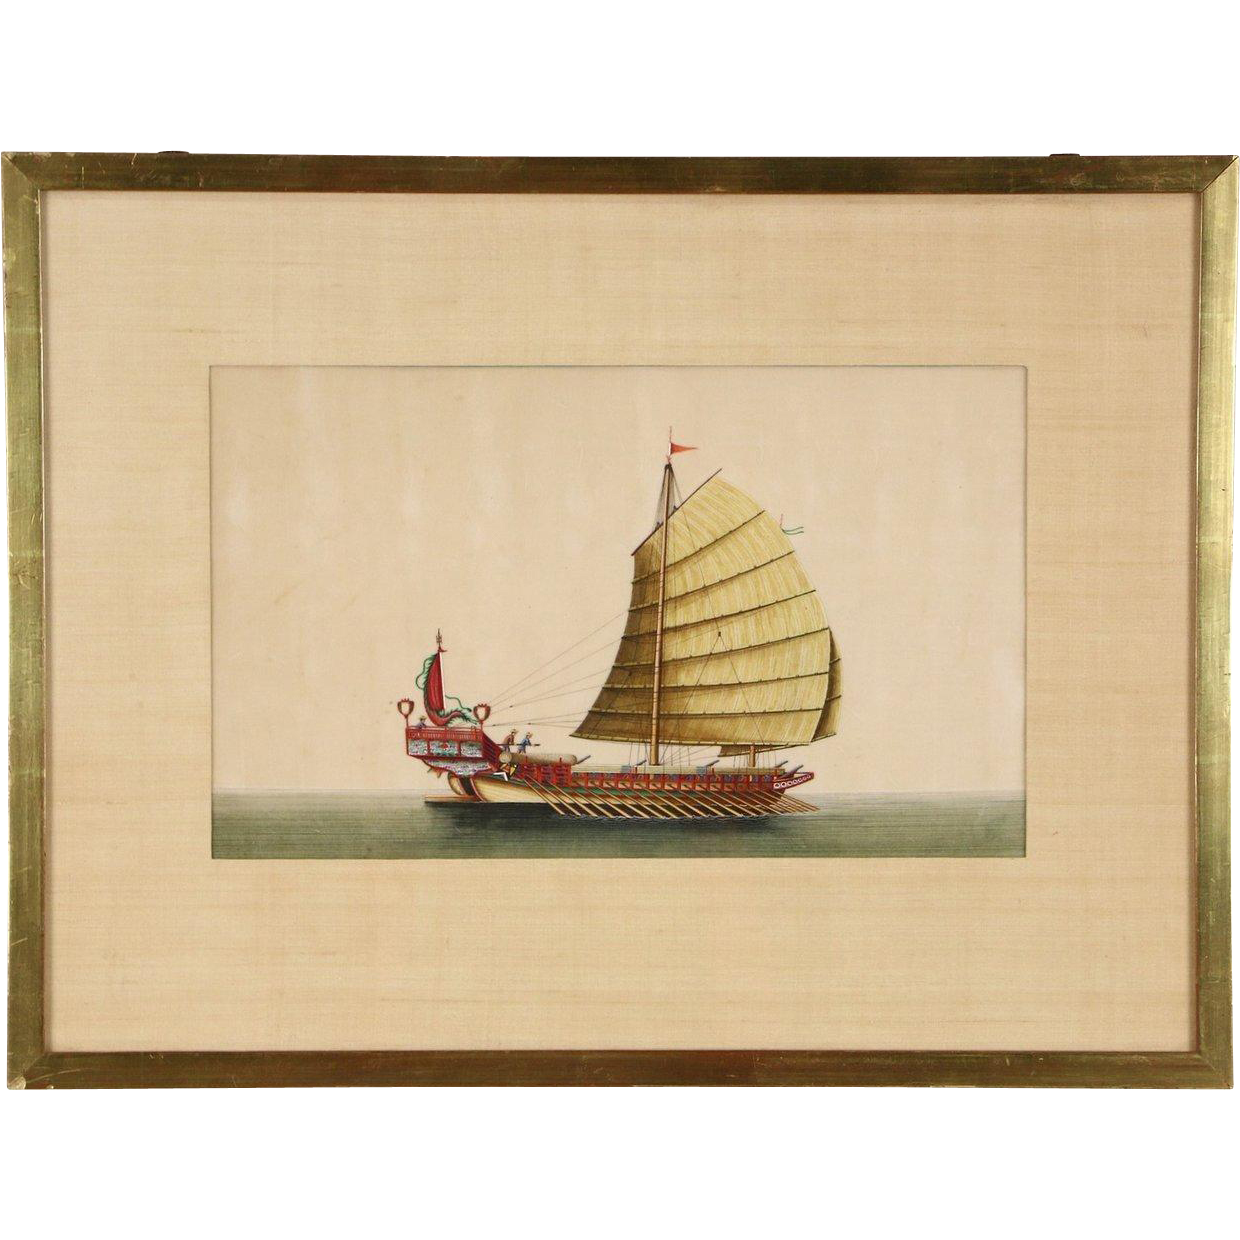 Chinese 1900's Antique Original Painting of Galley Sailing Ship